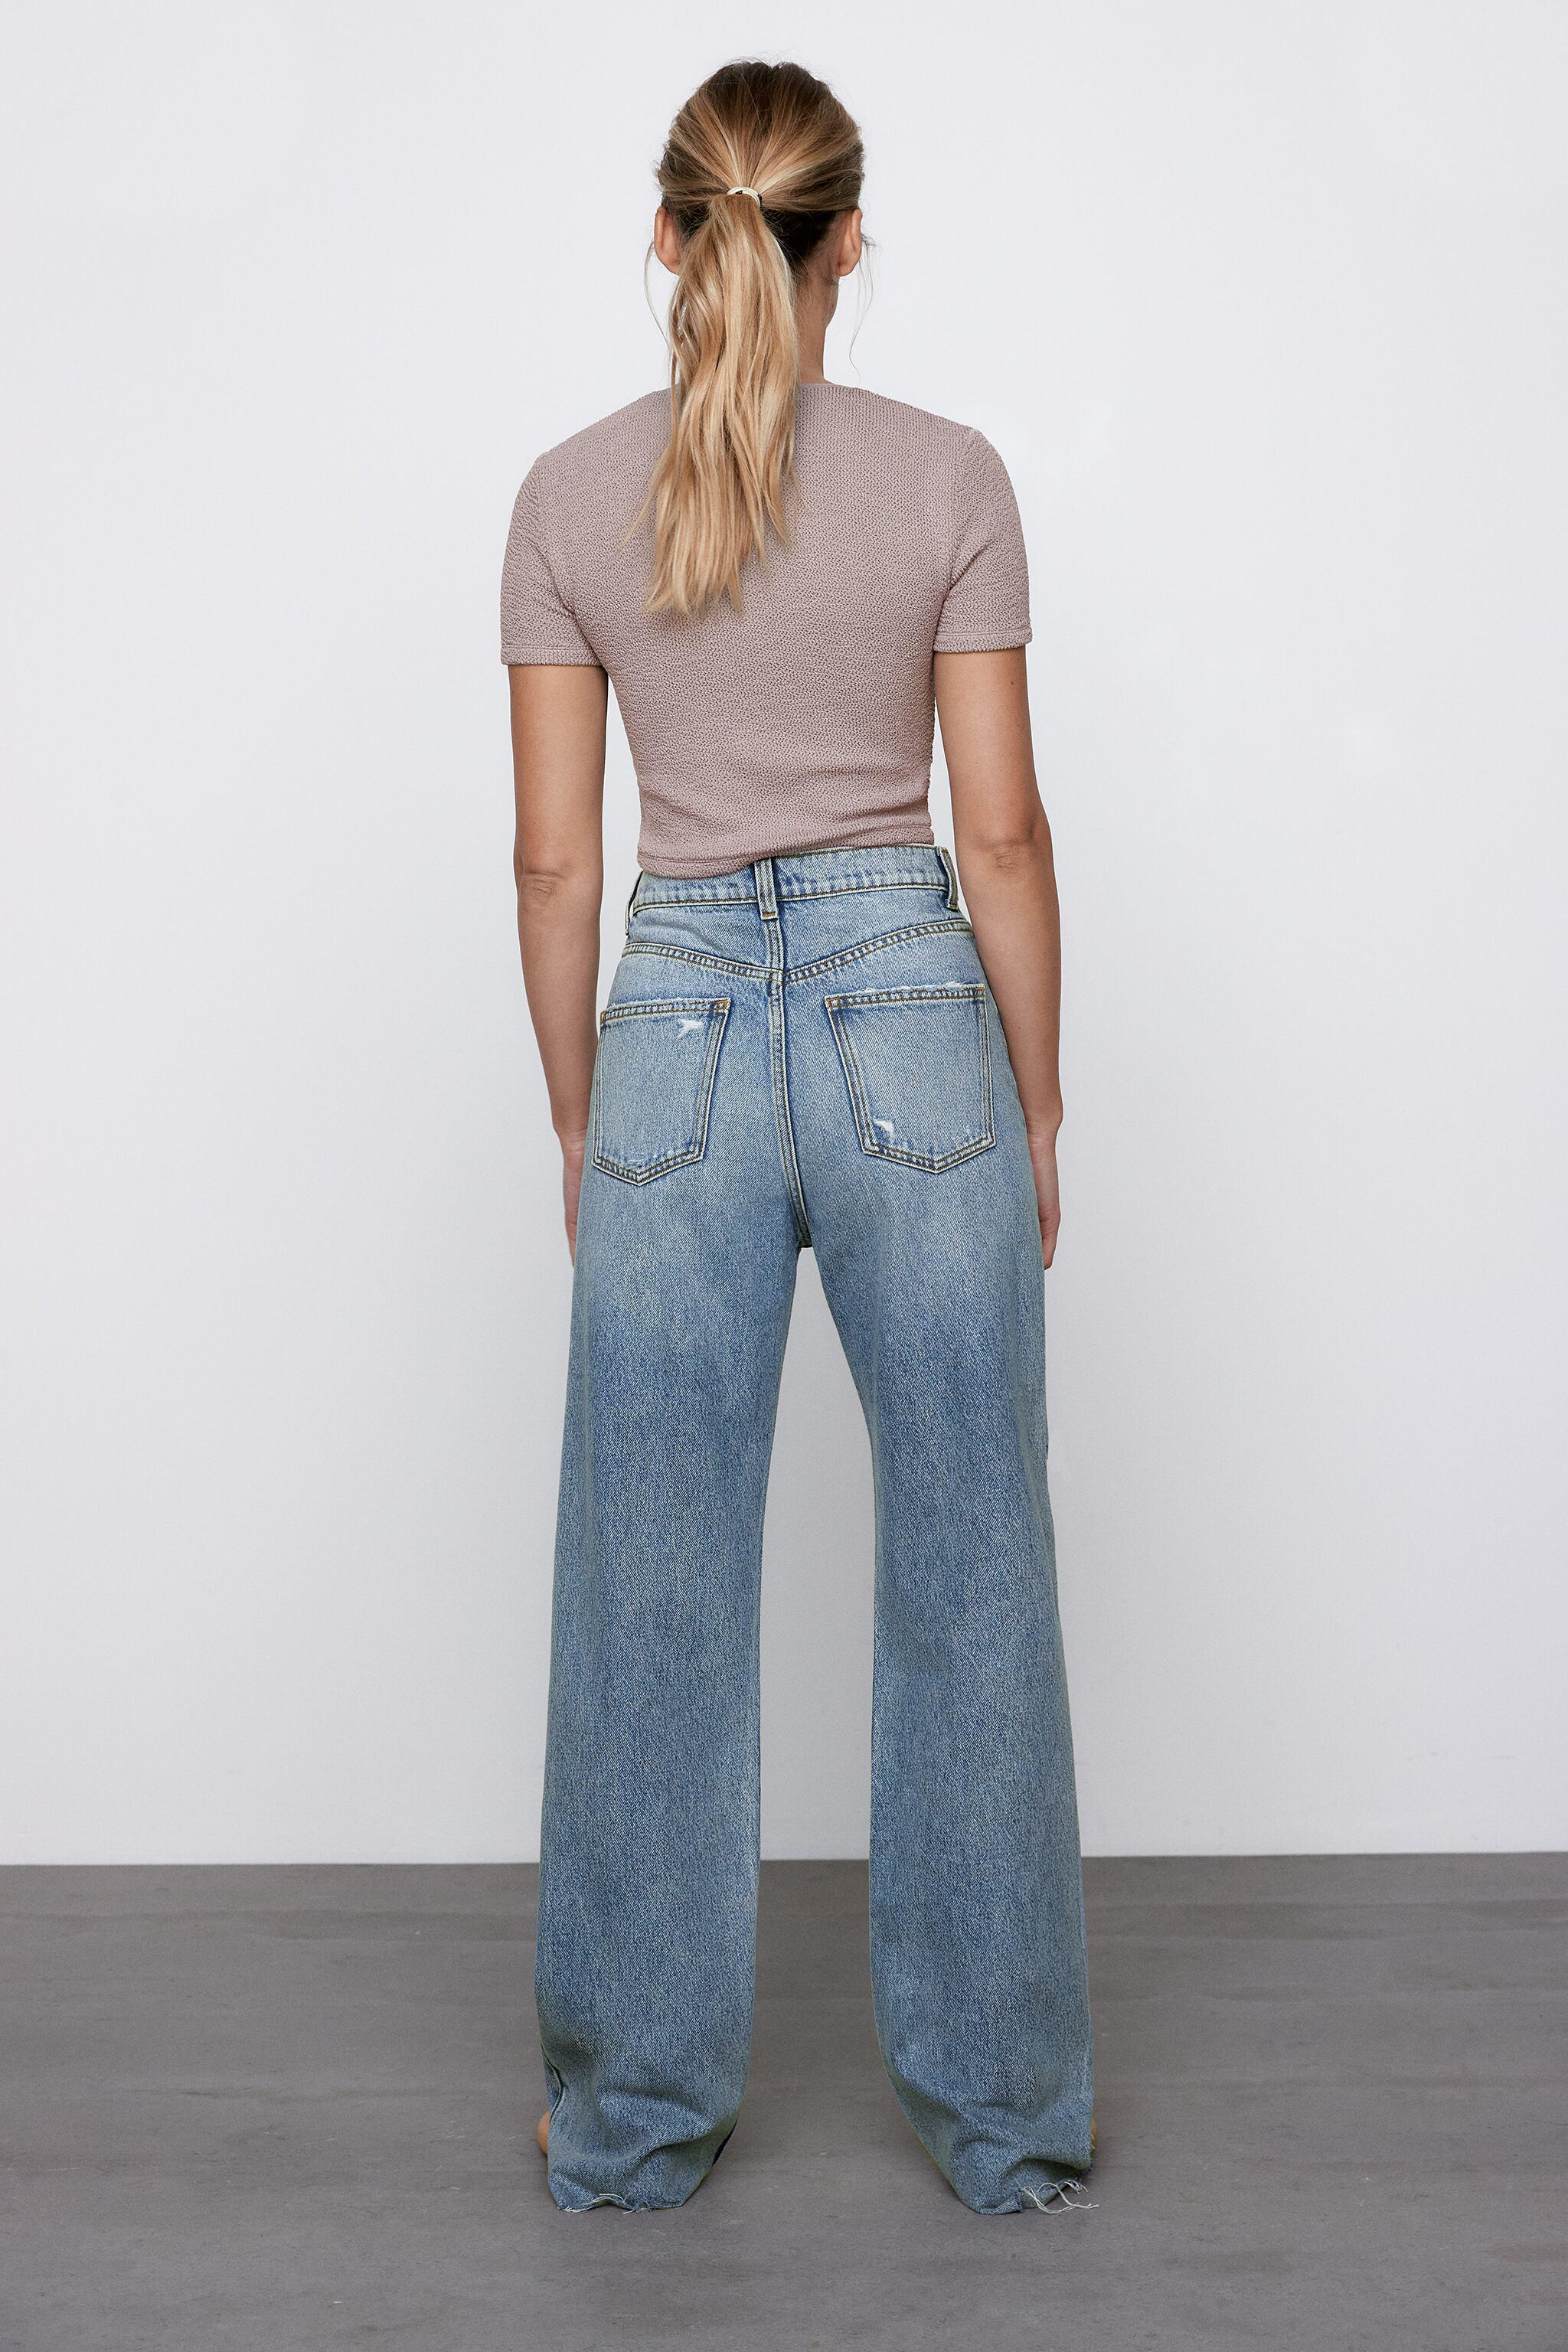 CROPPED TEXTURED WEAVE SHIRT 2